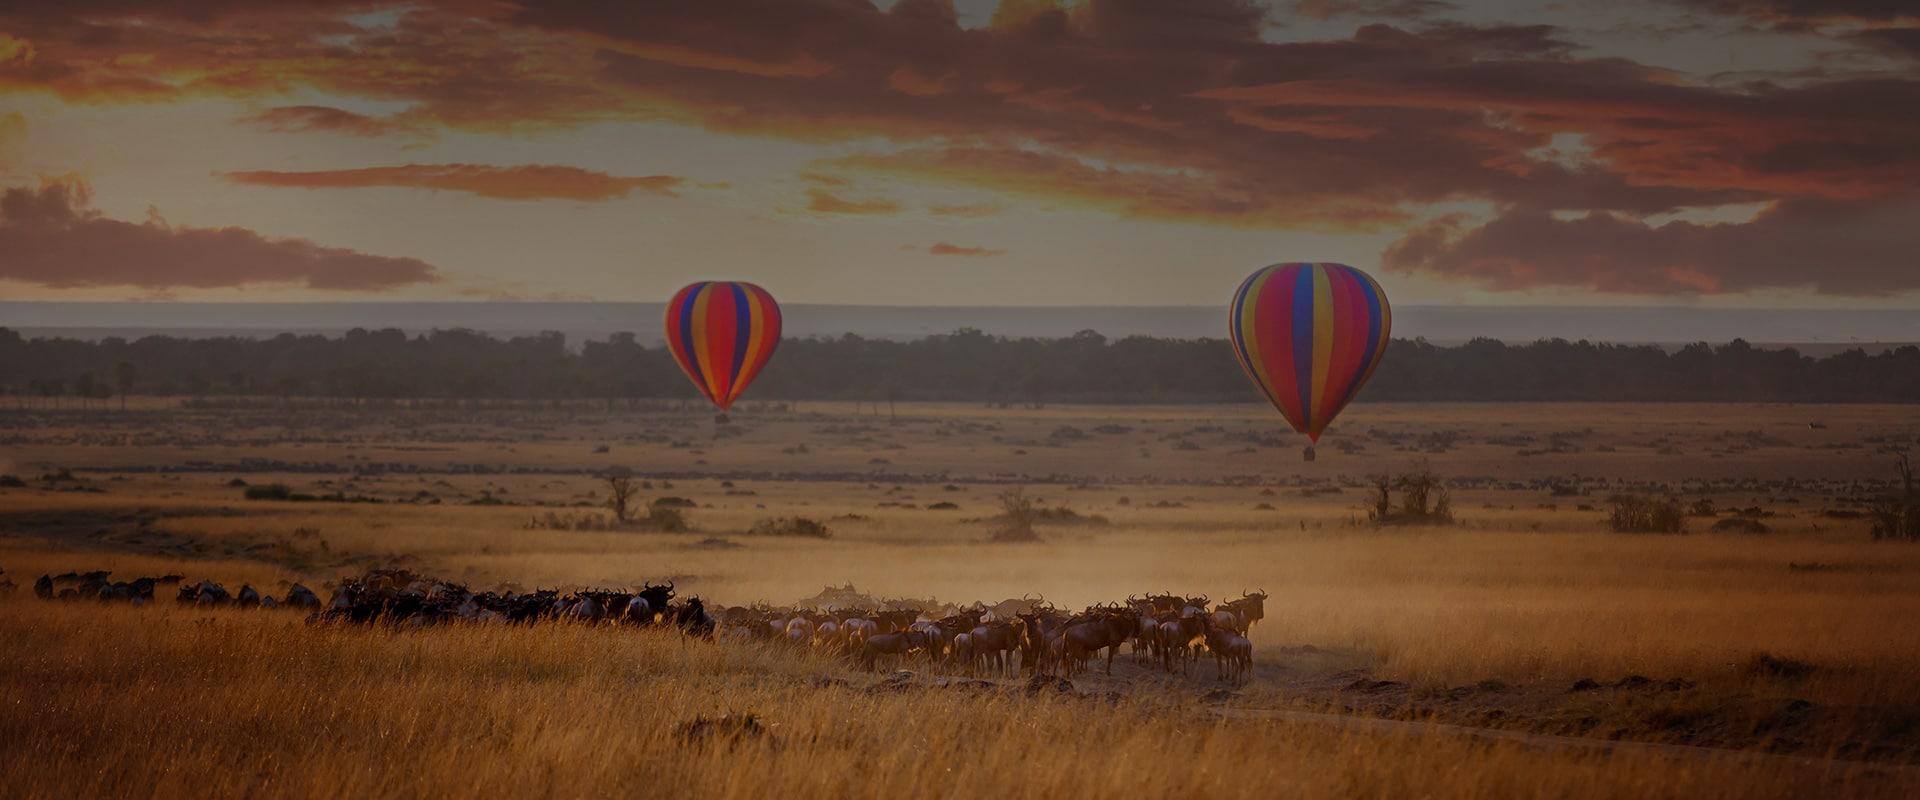 Best African Safaris Experience